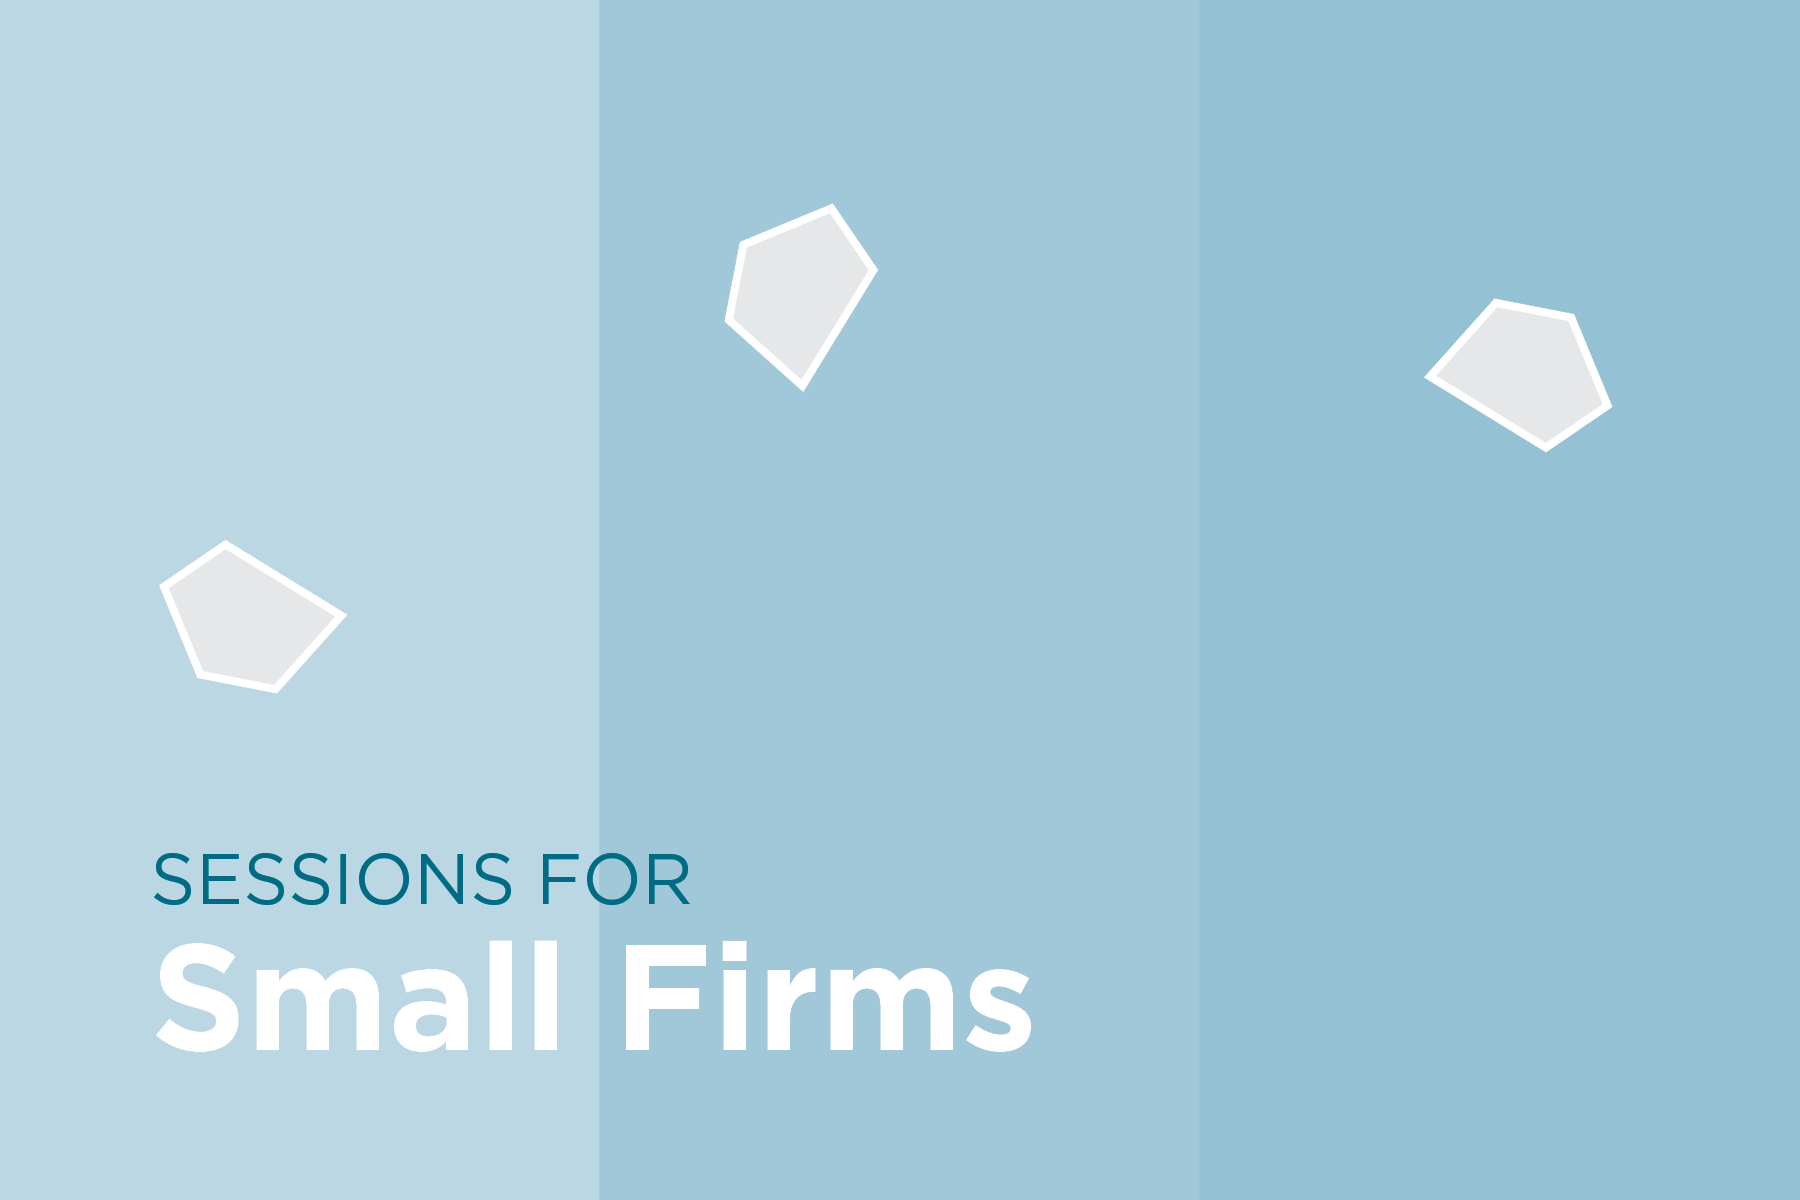 AIA Seattle is pleased to offer 3 individual half-day programs tailored to the needs and interests of small firm practitioners. Facilitated by industry experts consulting on a variety of topics from communications strategies to firm ownership transitions, Sessions for Small Firms kicks off summer 2019.